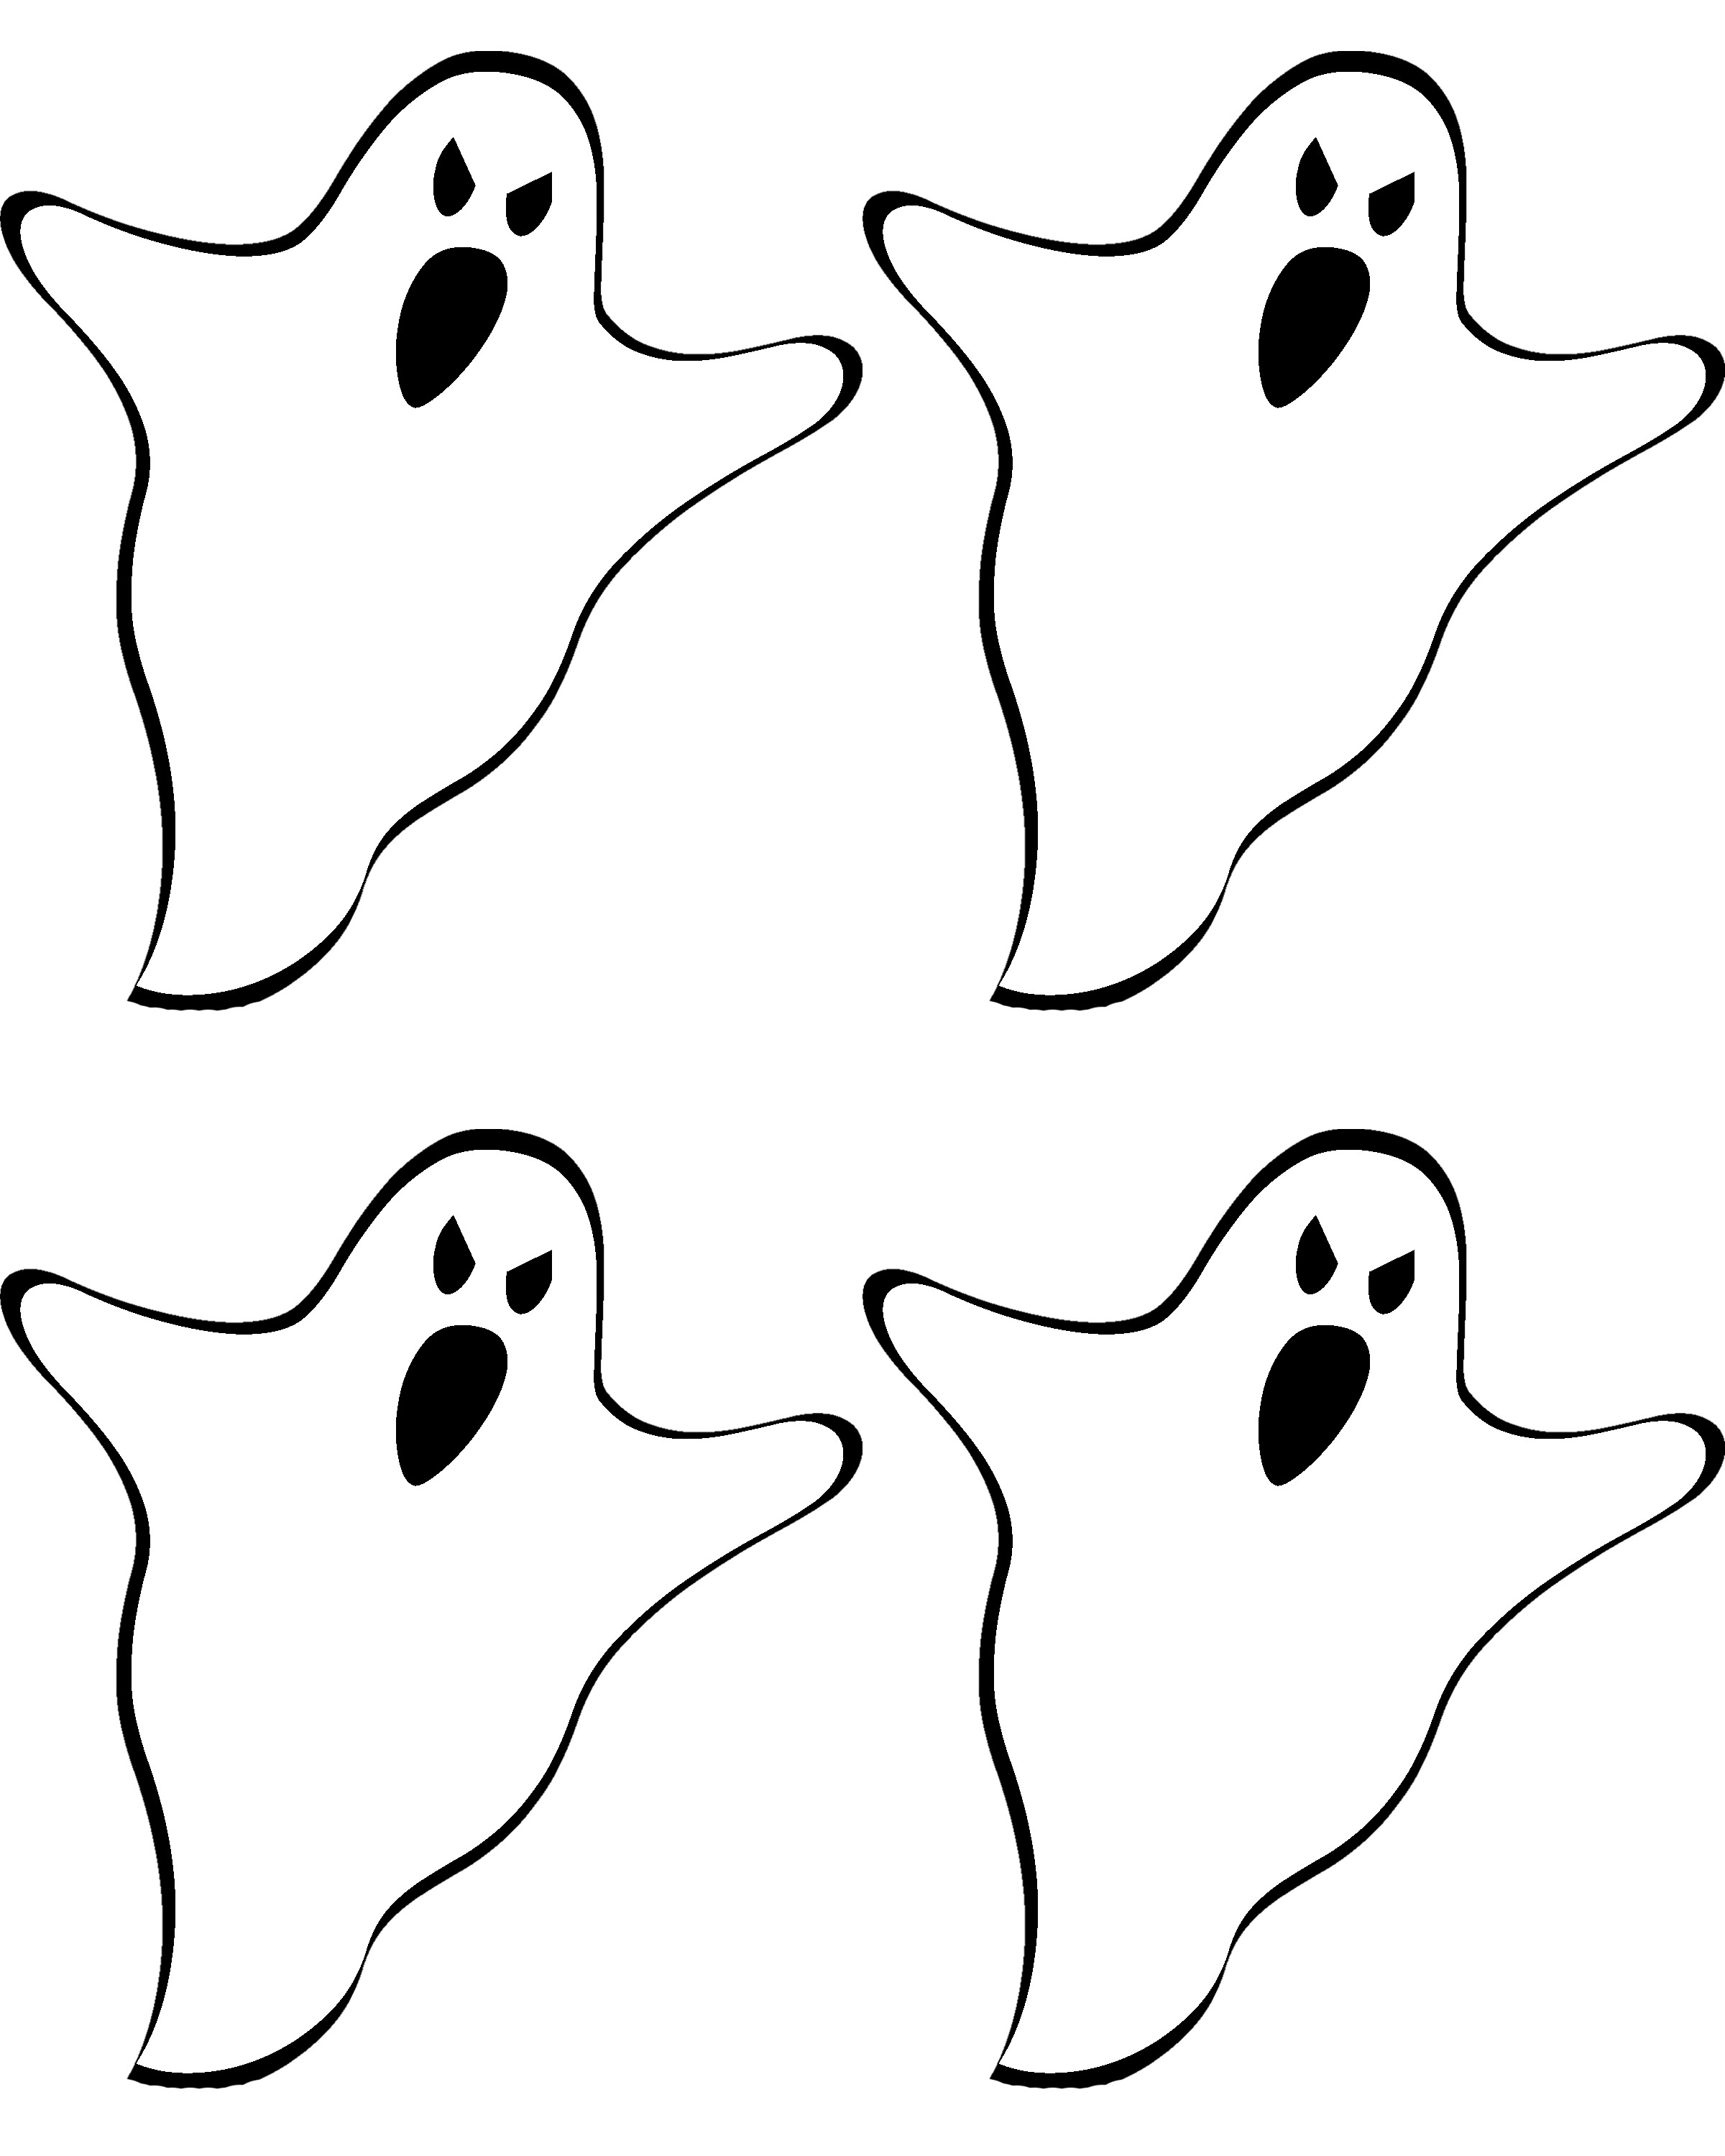 Haunted House Silhouette Template at GetDrawings.com | Free for ...